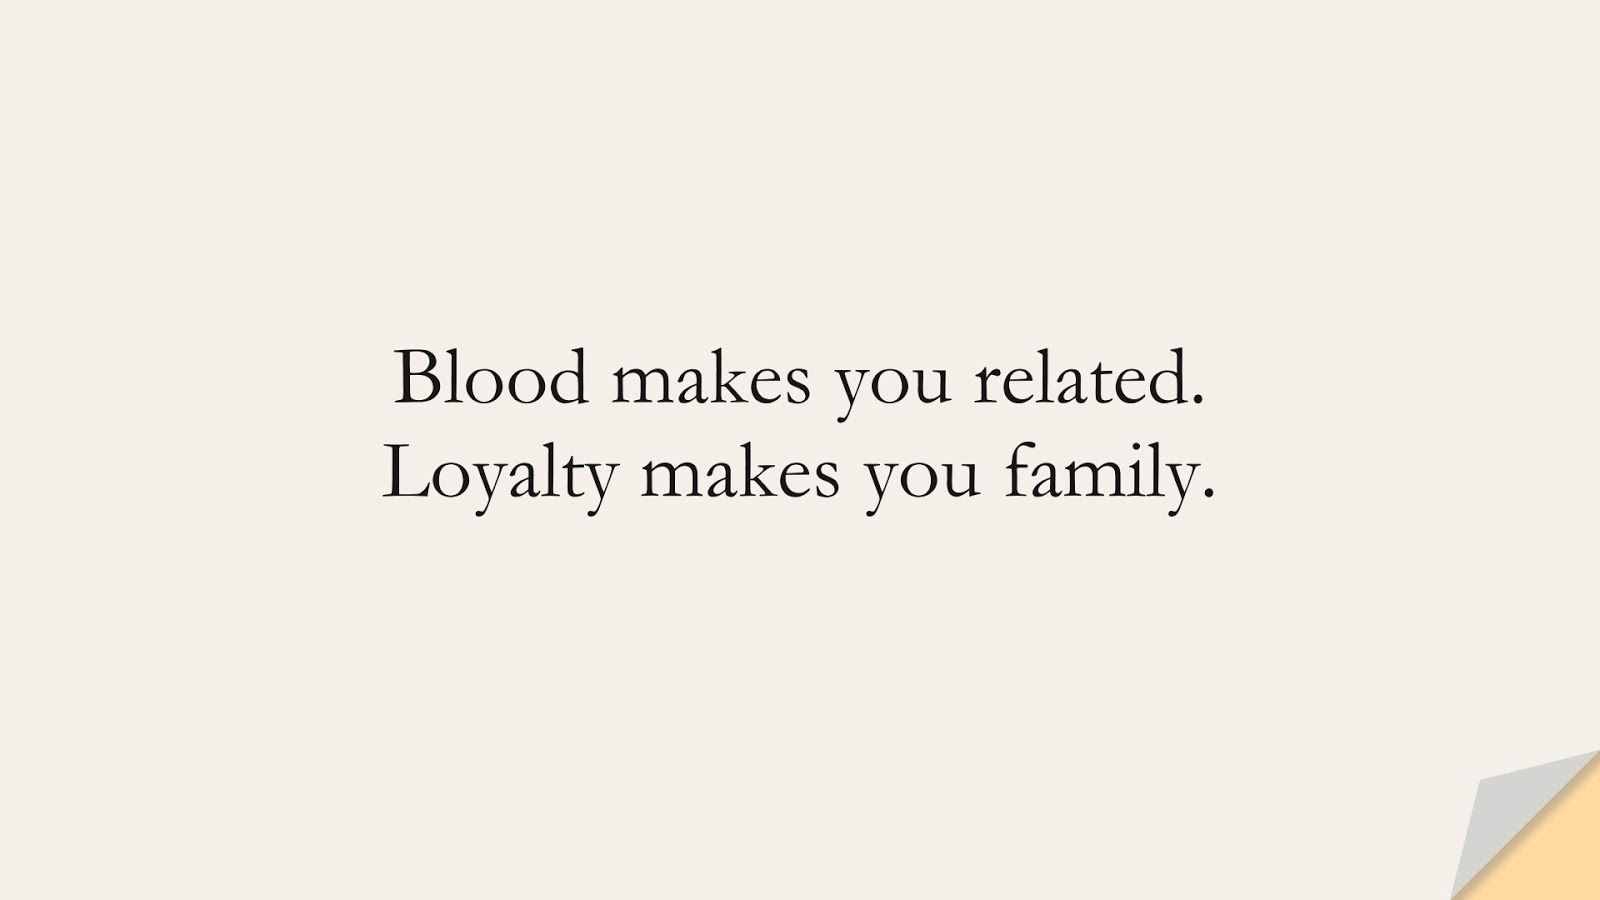 Blood makes you related. Loyalty makes you family.FALSE